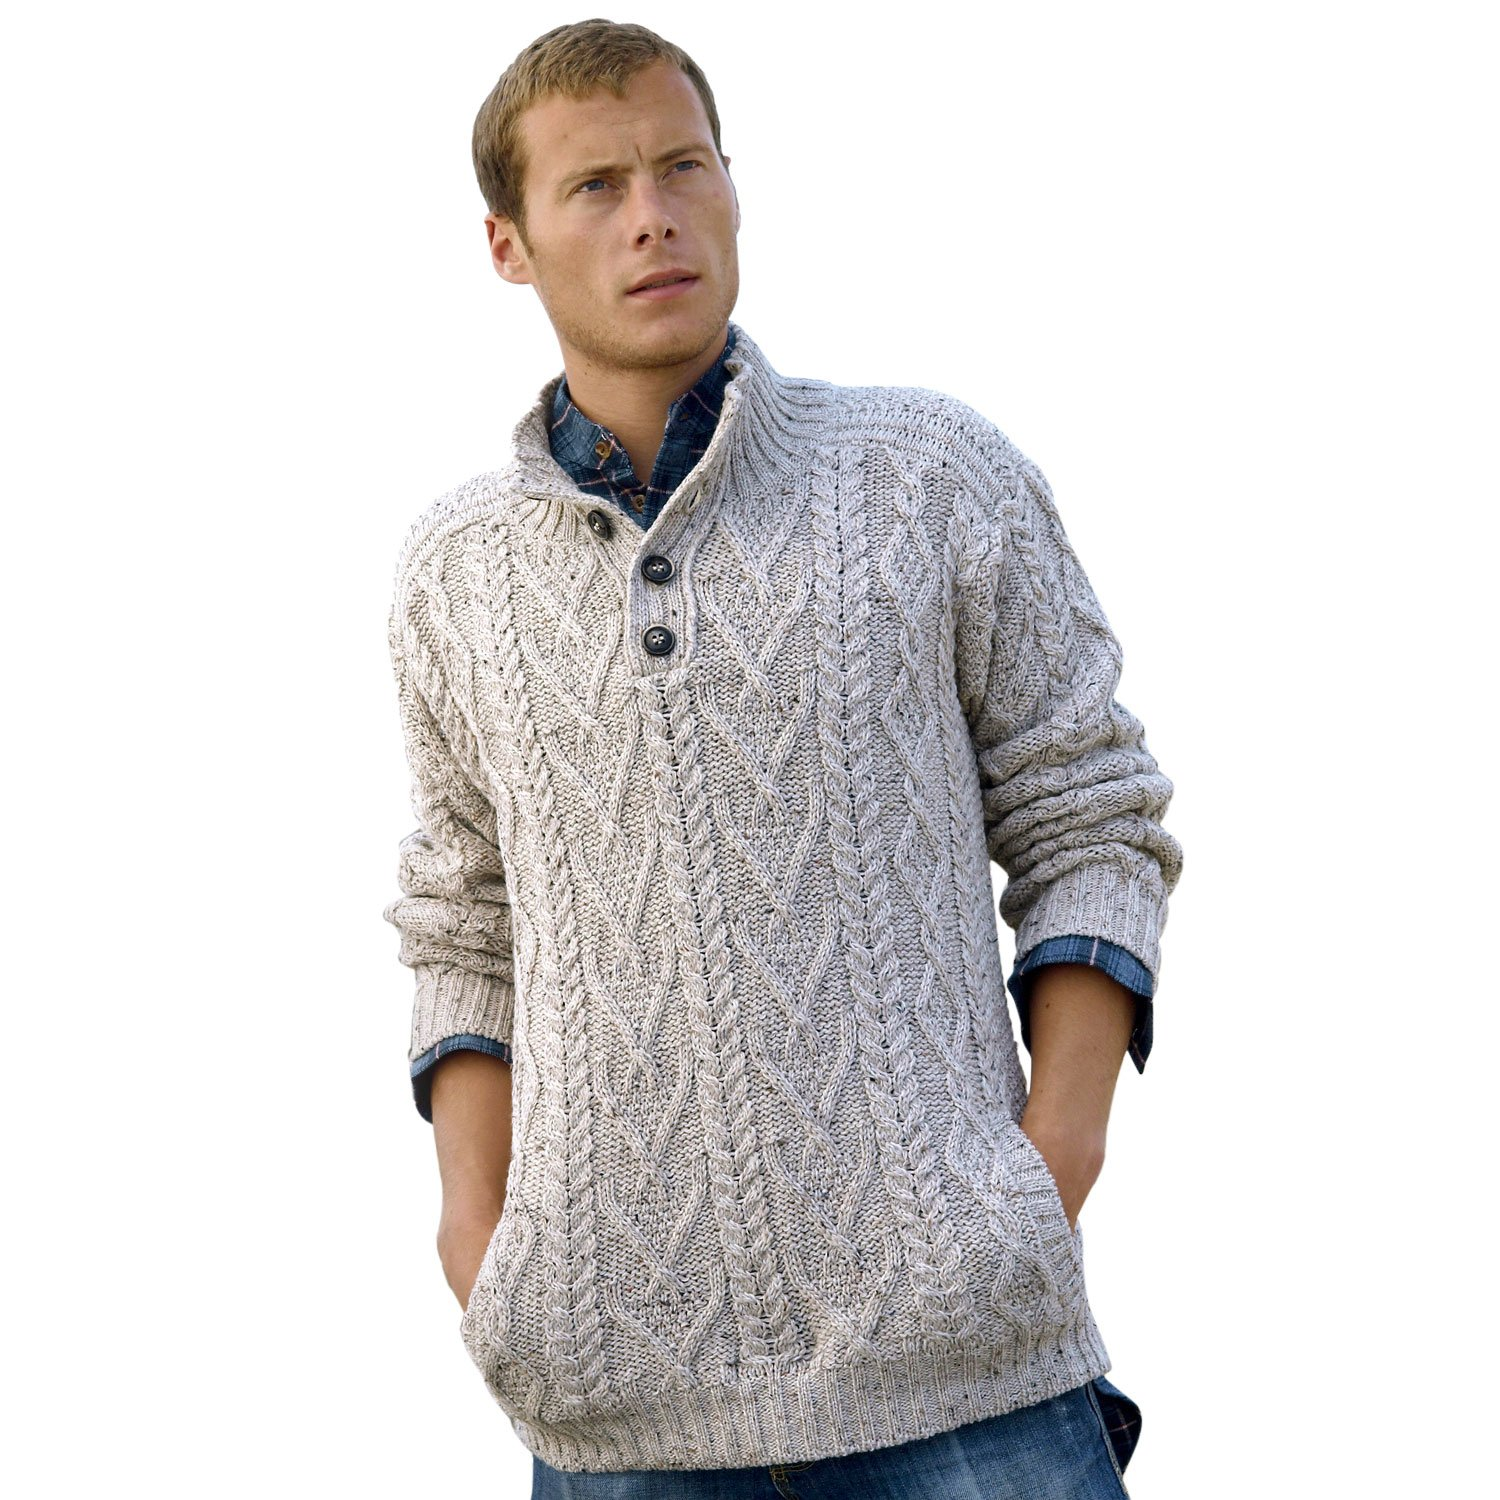 Amazon.com: West End Knitwear 100% Irish Merino Wool Traditional ...